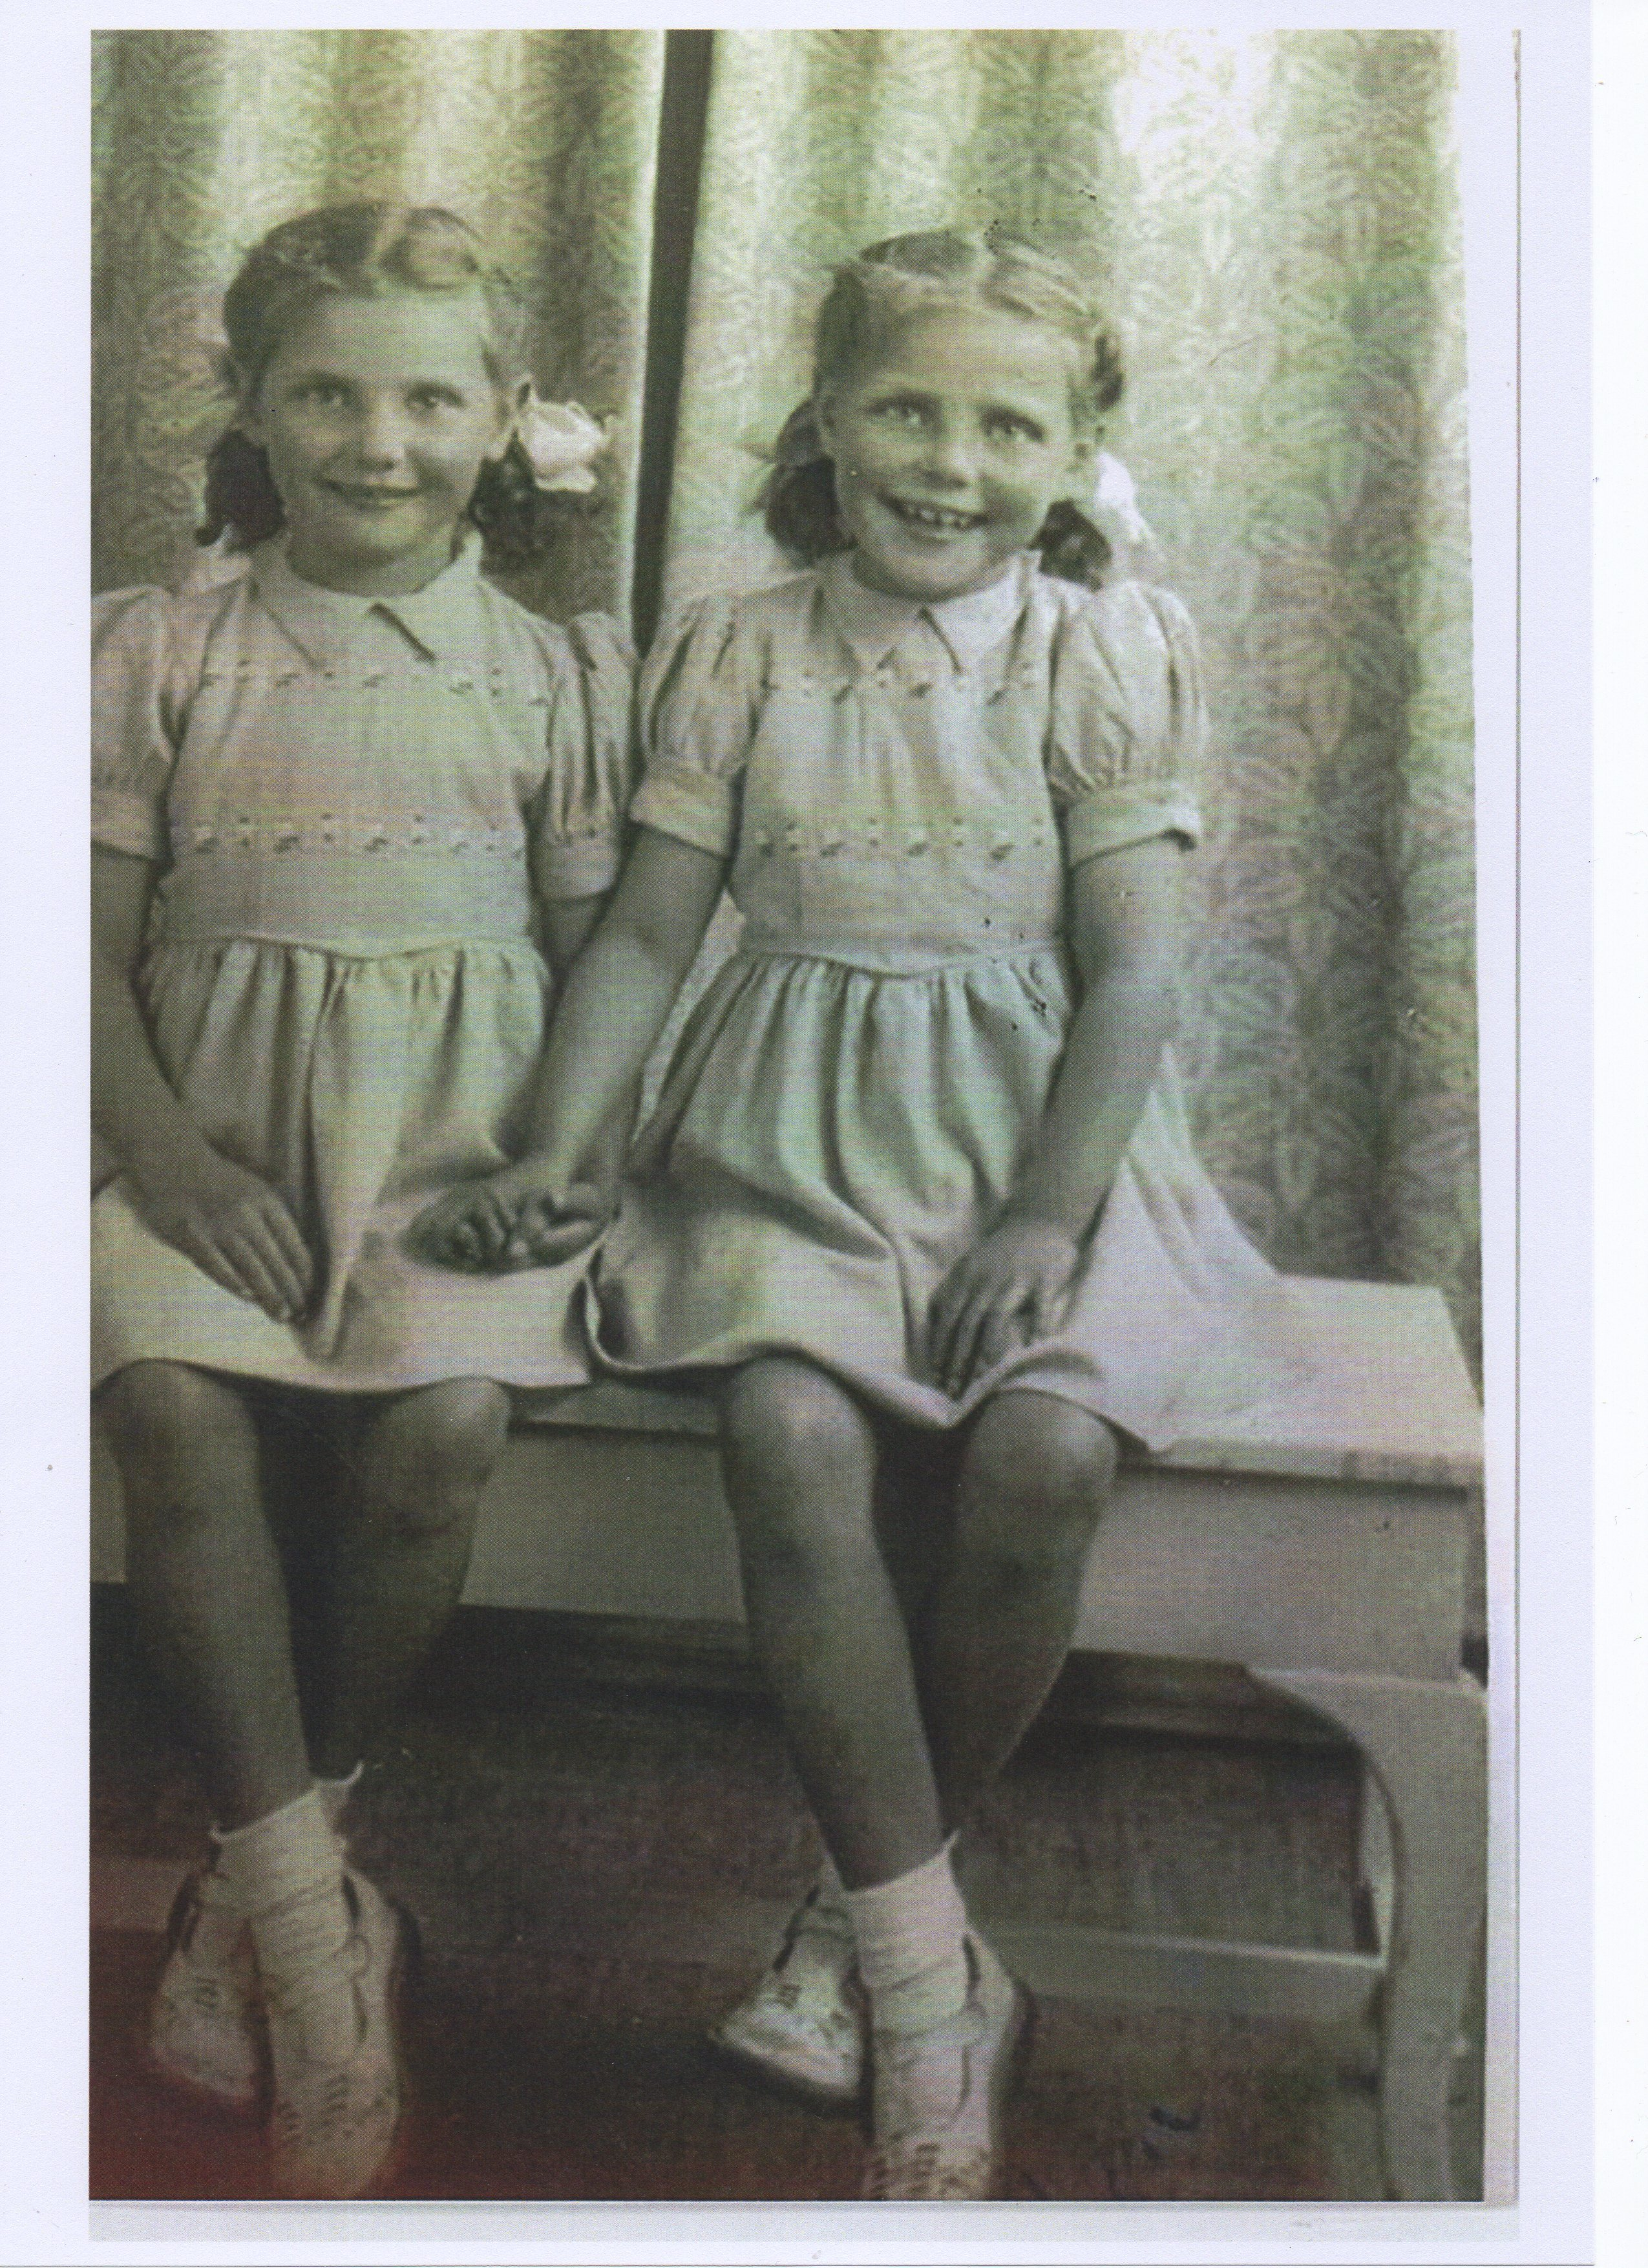 Photo of my Twin Sisters Wendy & Marjory.